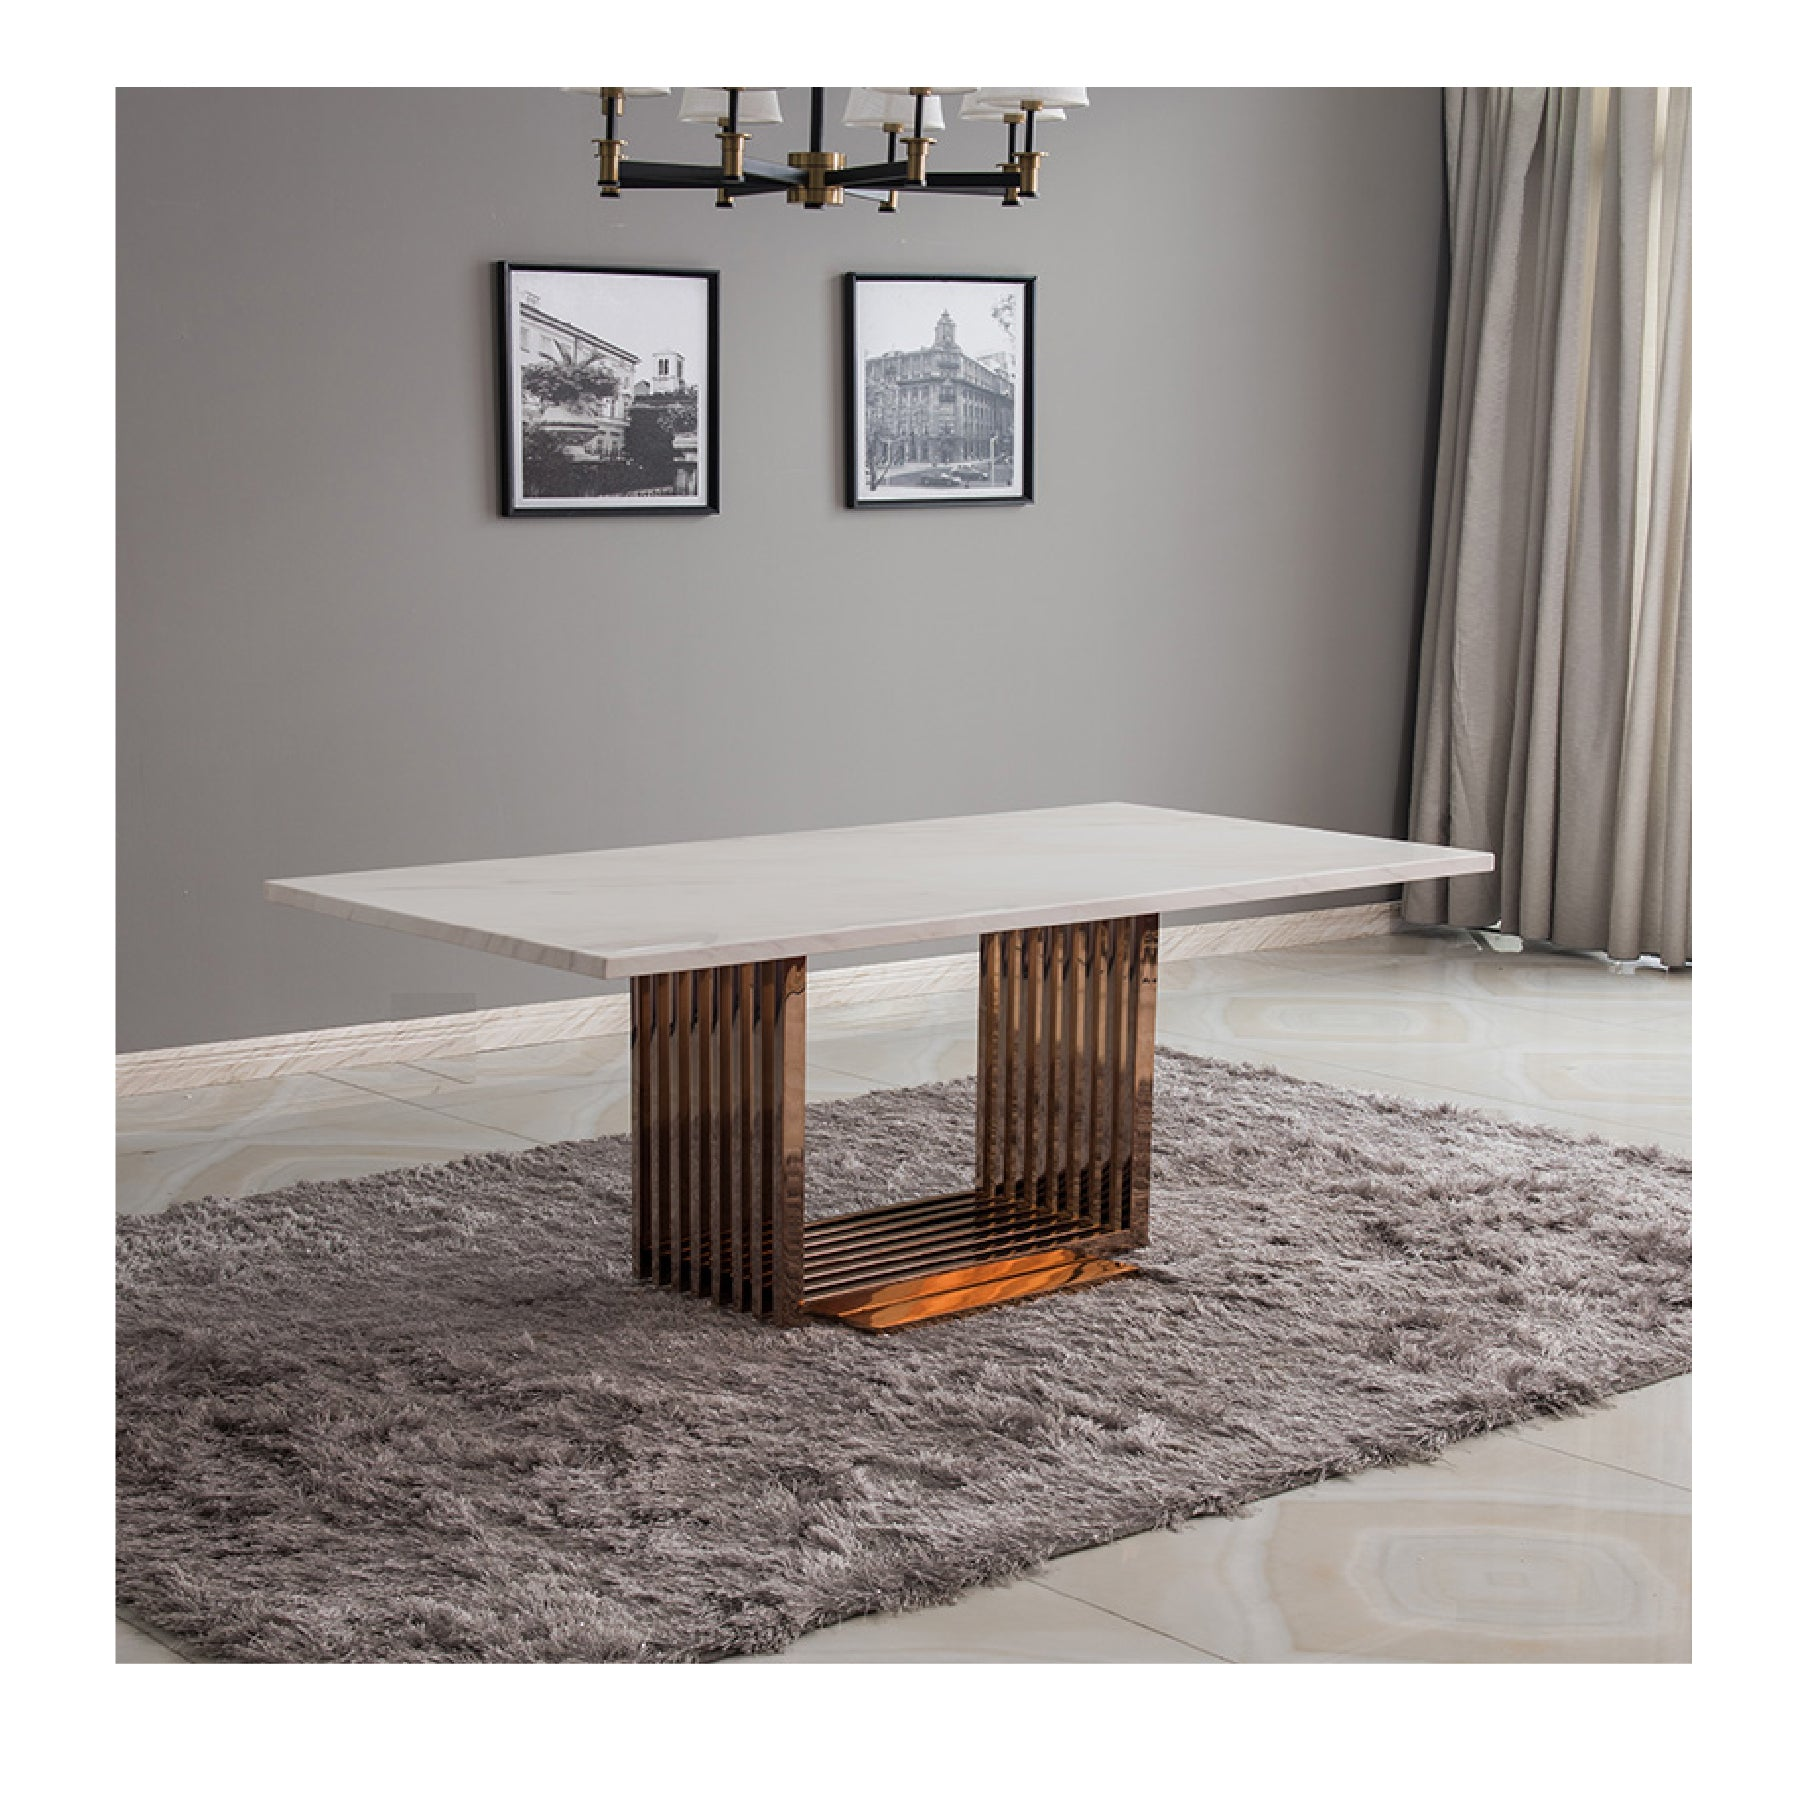 Marble Table MHF005 - mhomefurniture